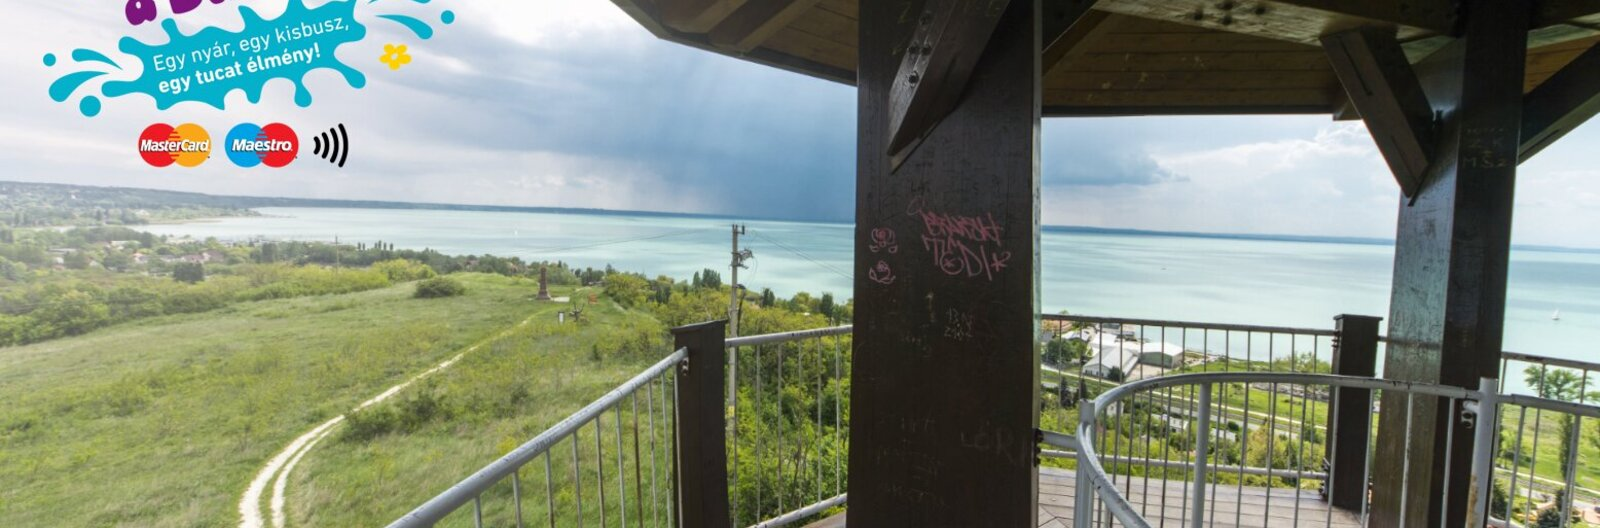 Balaton's observation towers offer jaw-dropping vistas